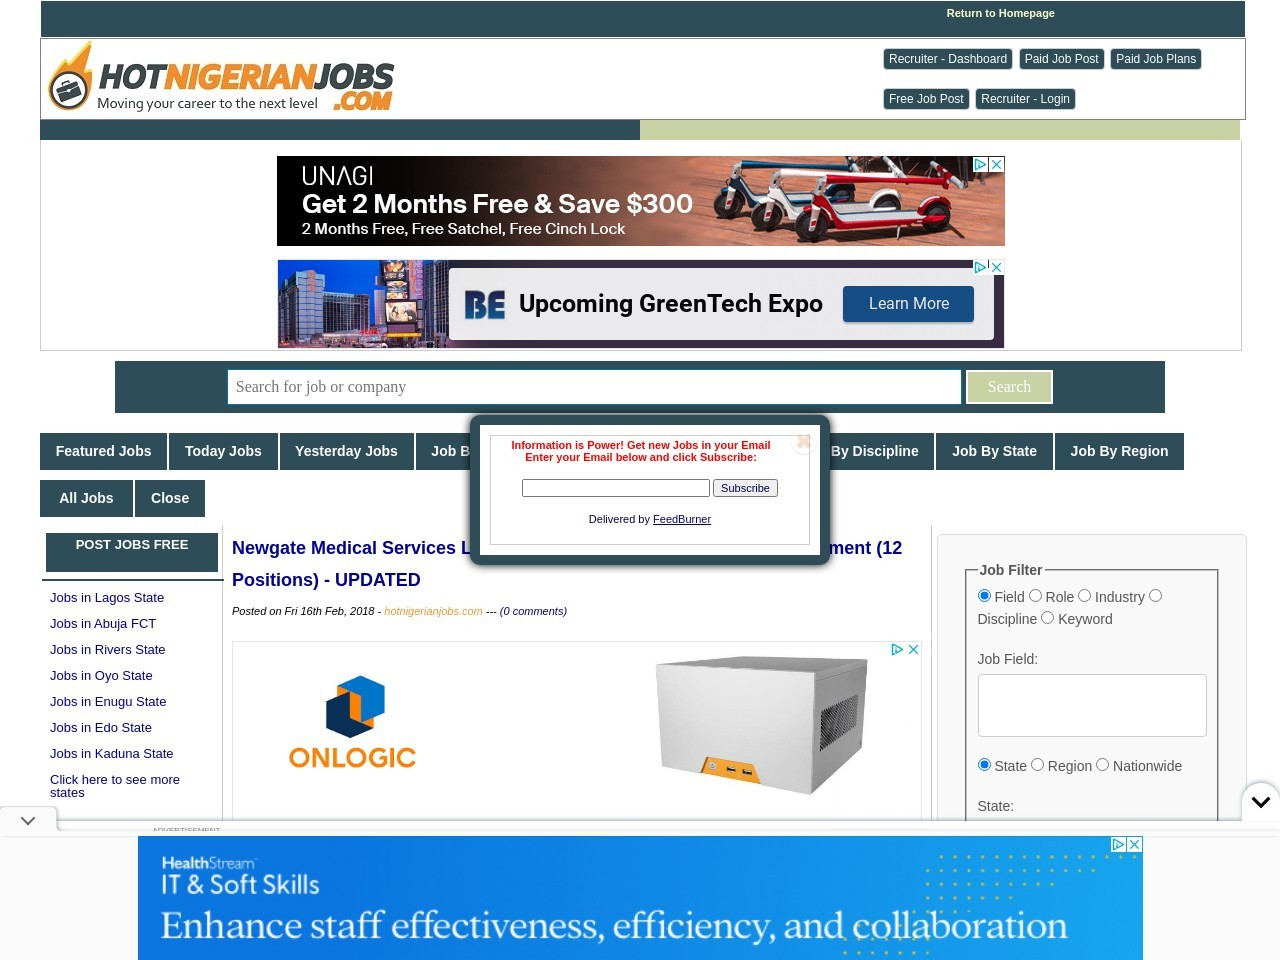 Newgate Medical Services Limited Fresh Graduate & Exp. Job Recruitment (12 Positions) – UPDATED